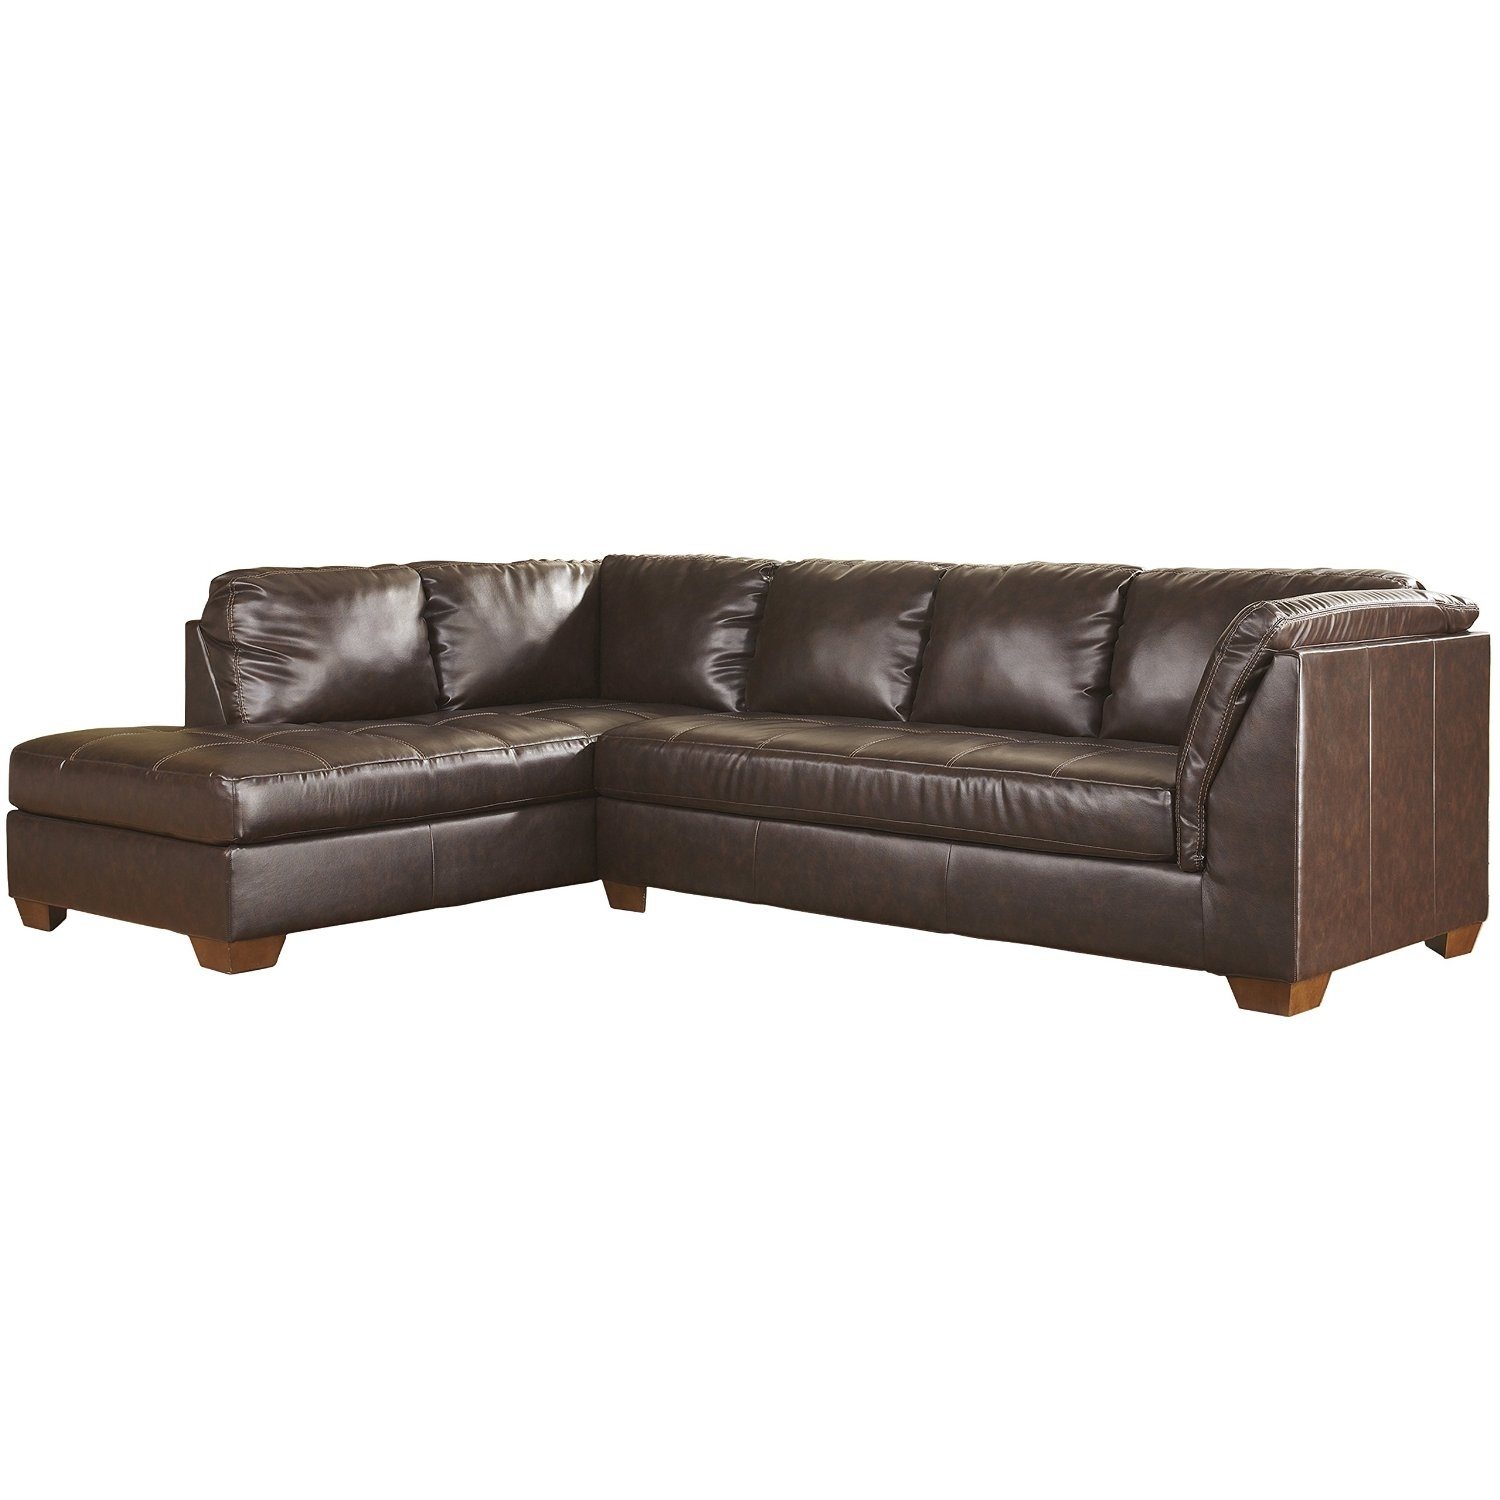 Cheap Ashley Furniture Sectional Sofas, Find Ashley Furniture In Delano 2 Piece Sectionals With Laf Oversized Chaise (View 26 of 30)